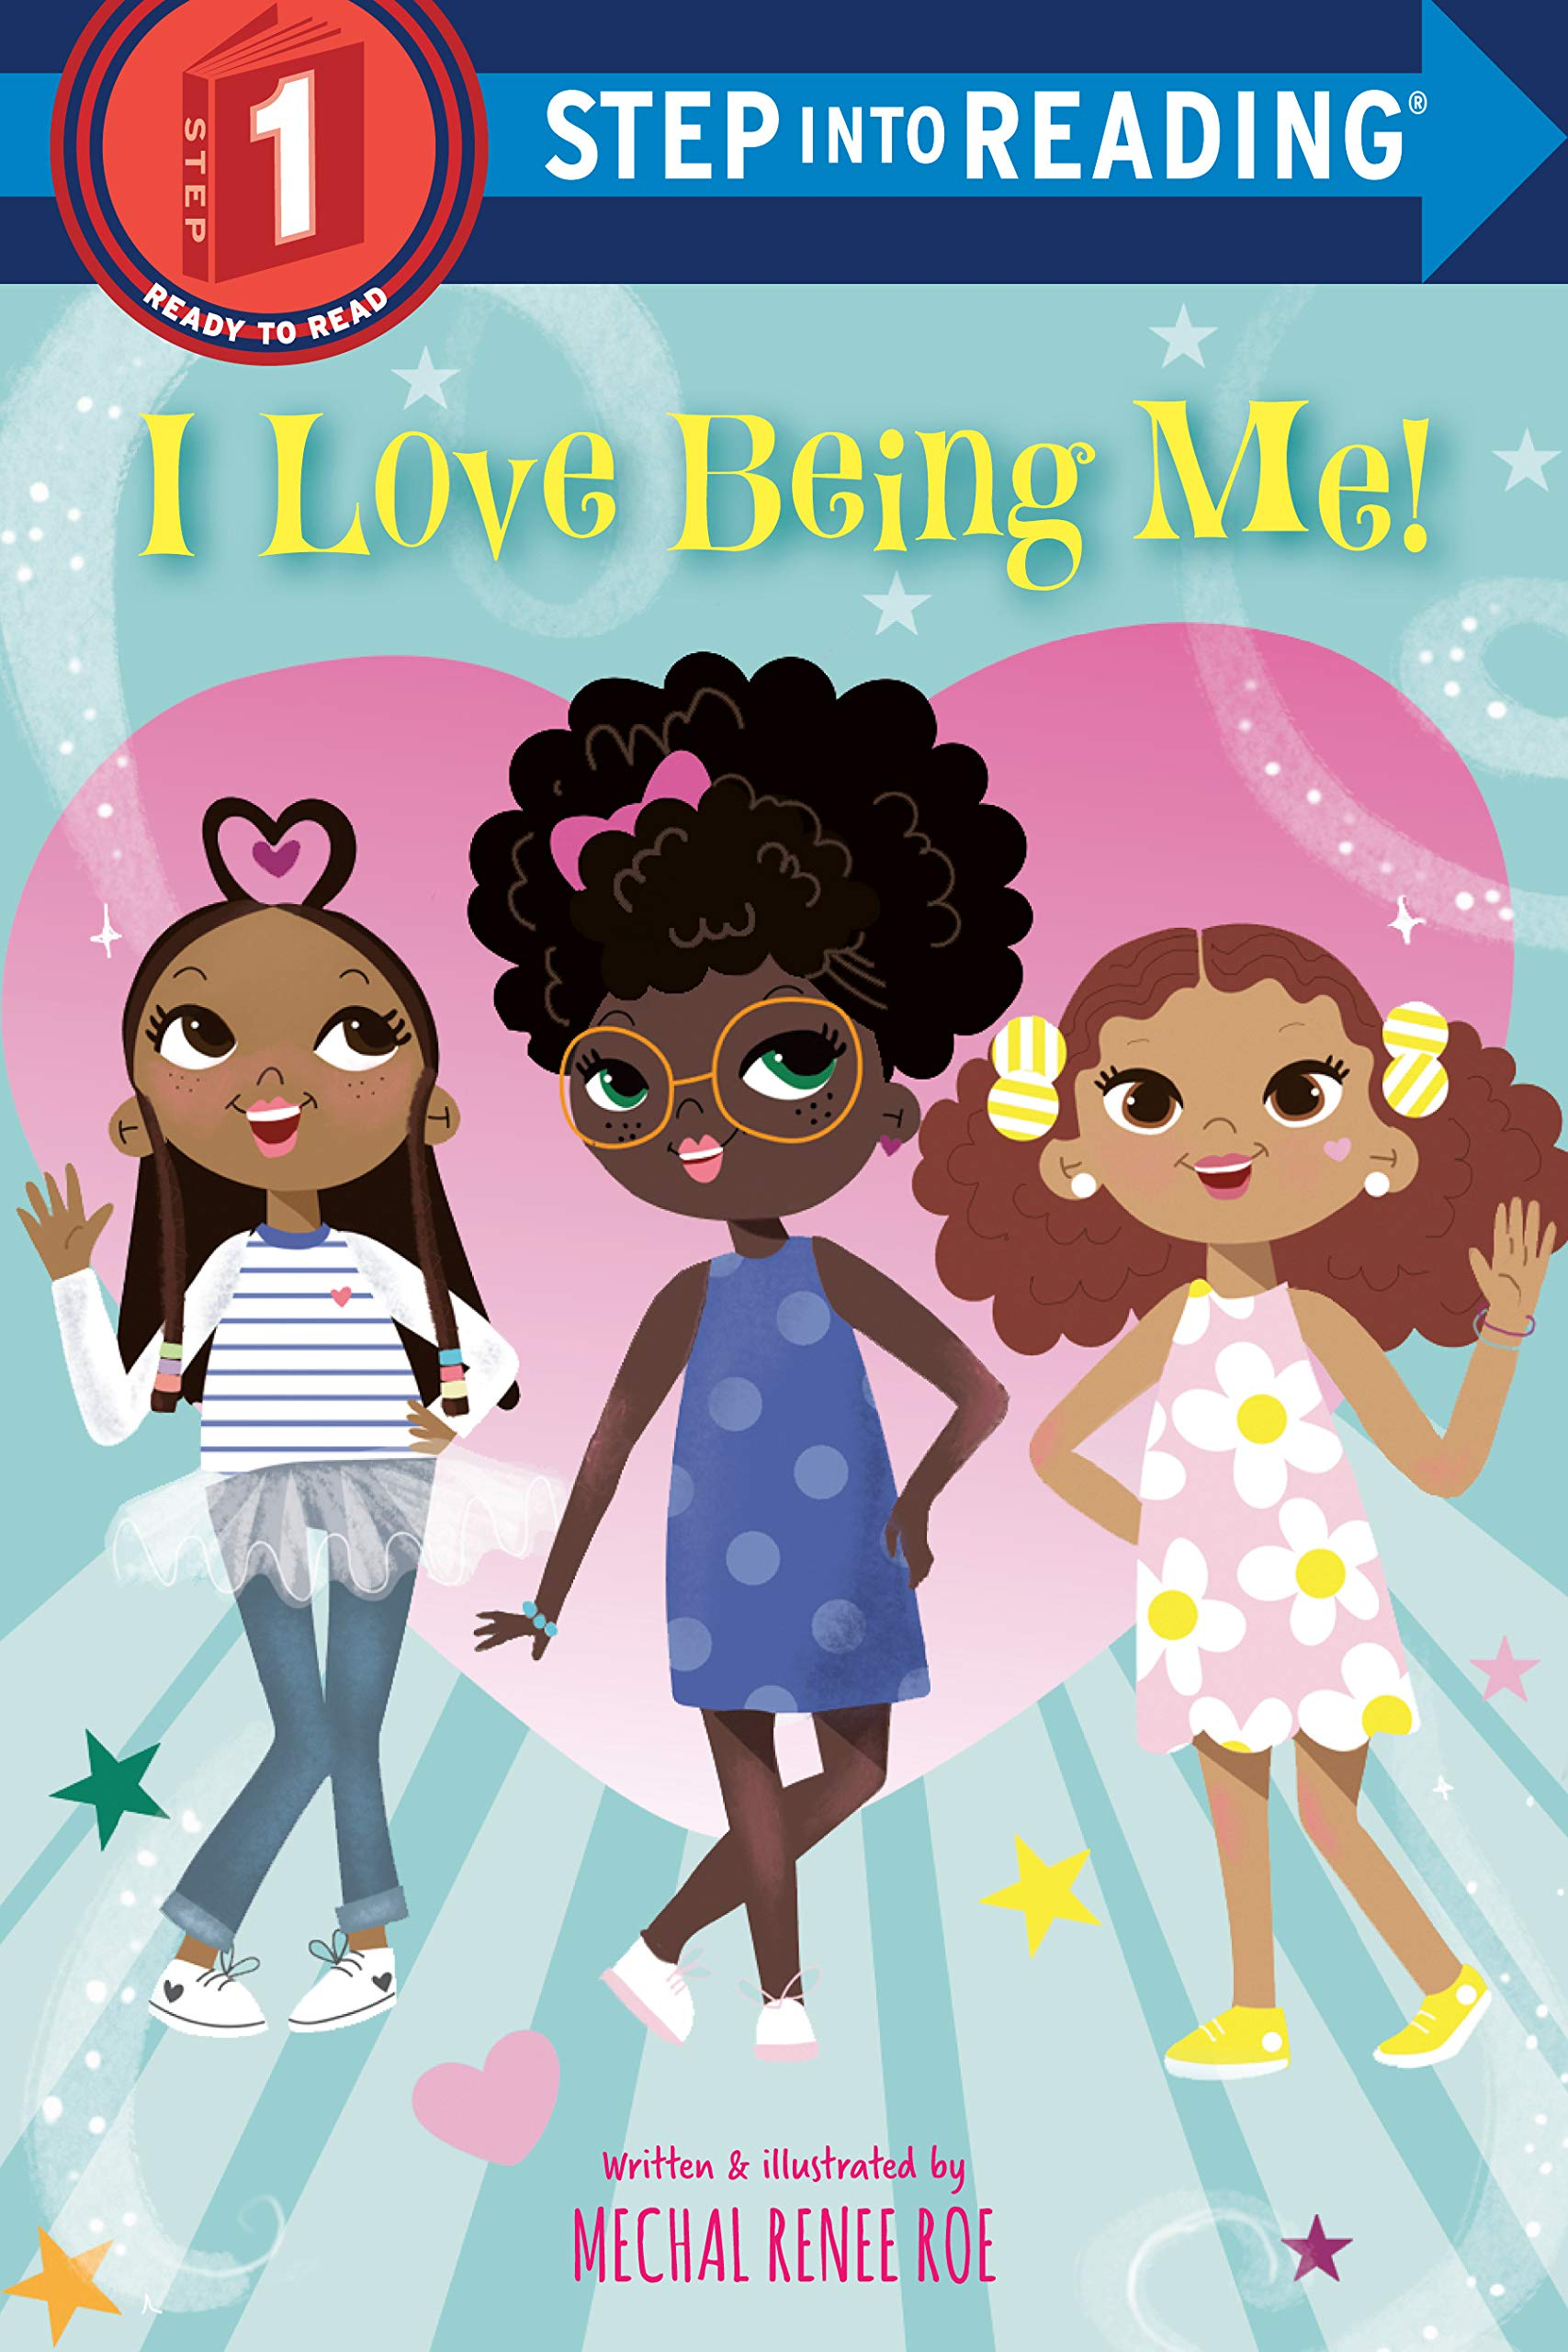 Amazon.com: I Love Being Me! (Step into Reading) (9781984895615): Roe,  Mechal Renee: Books